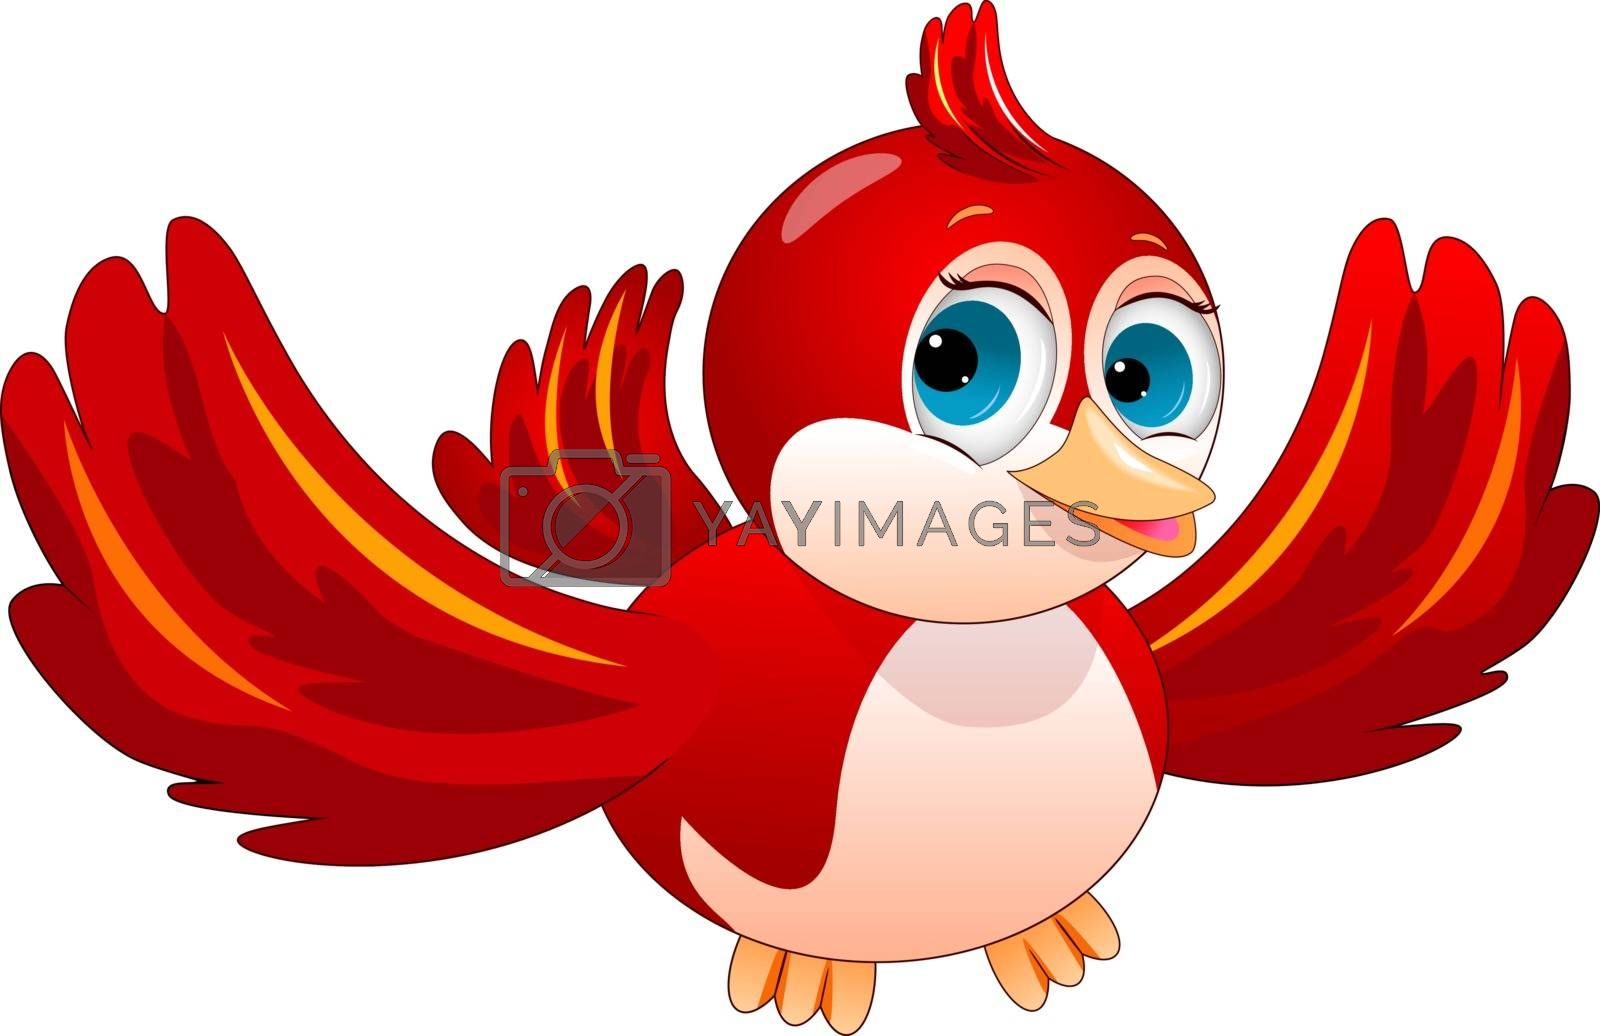 Cartoon red bird on a white background. Red bird character.